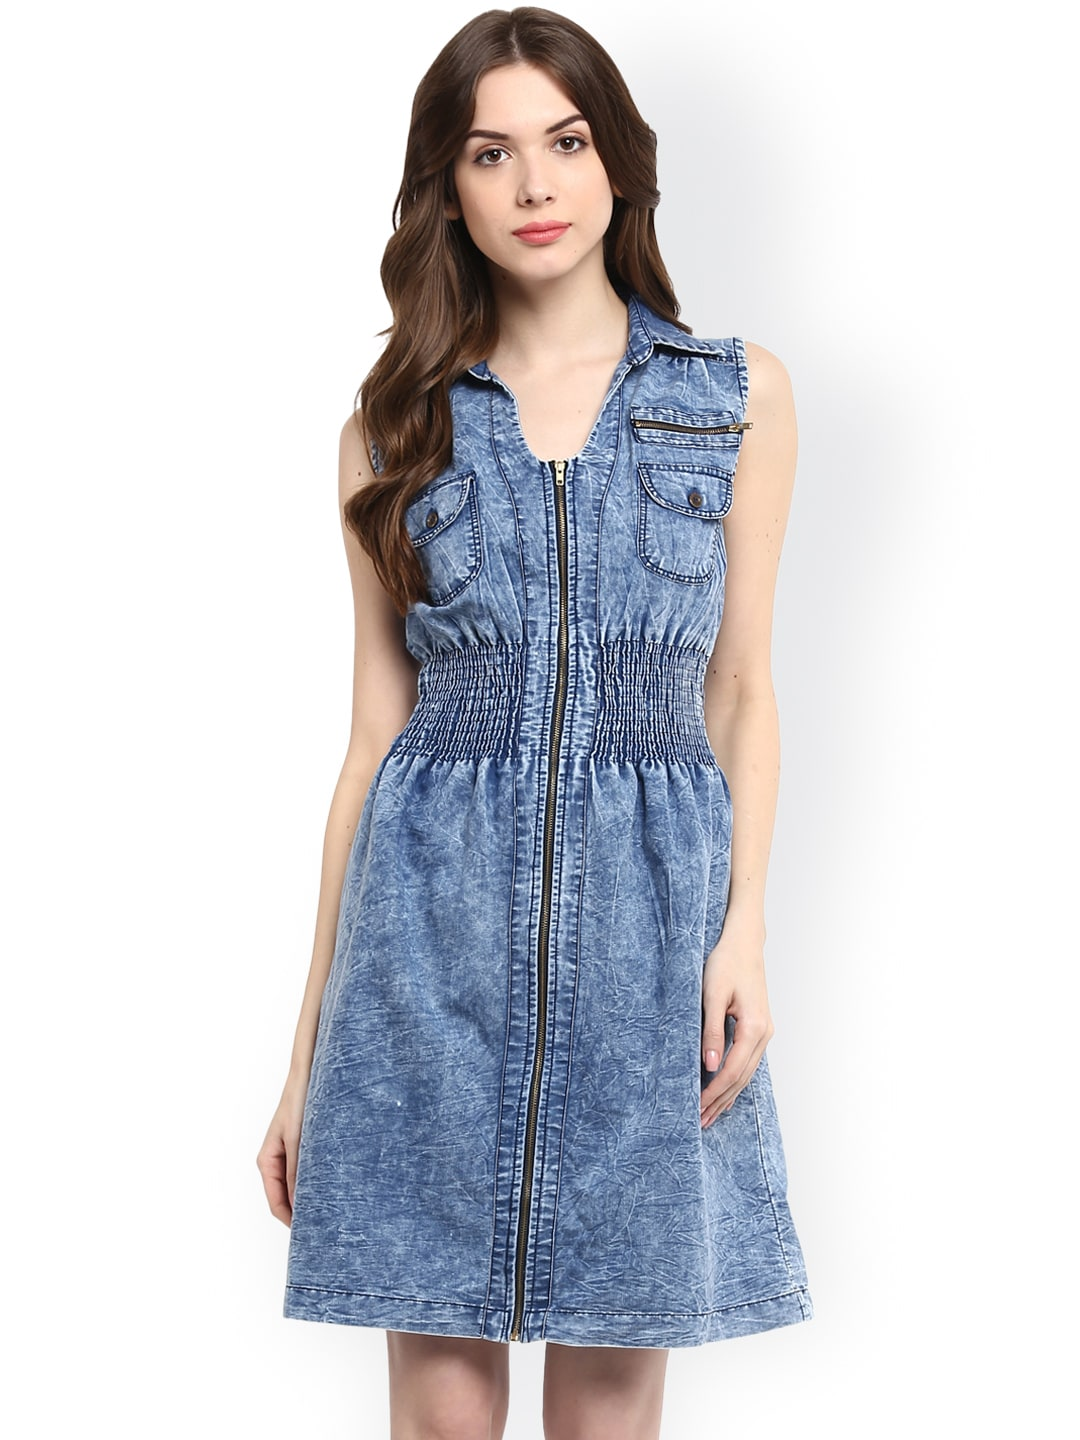 897c69ff3c588 Buy StyleStone Women Blue Denim Fit   Flare Dress - Dresses for ...